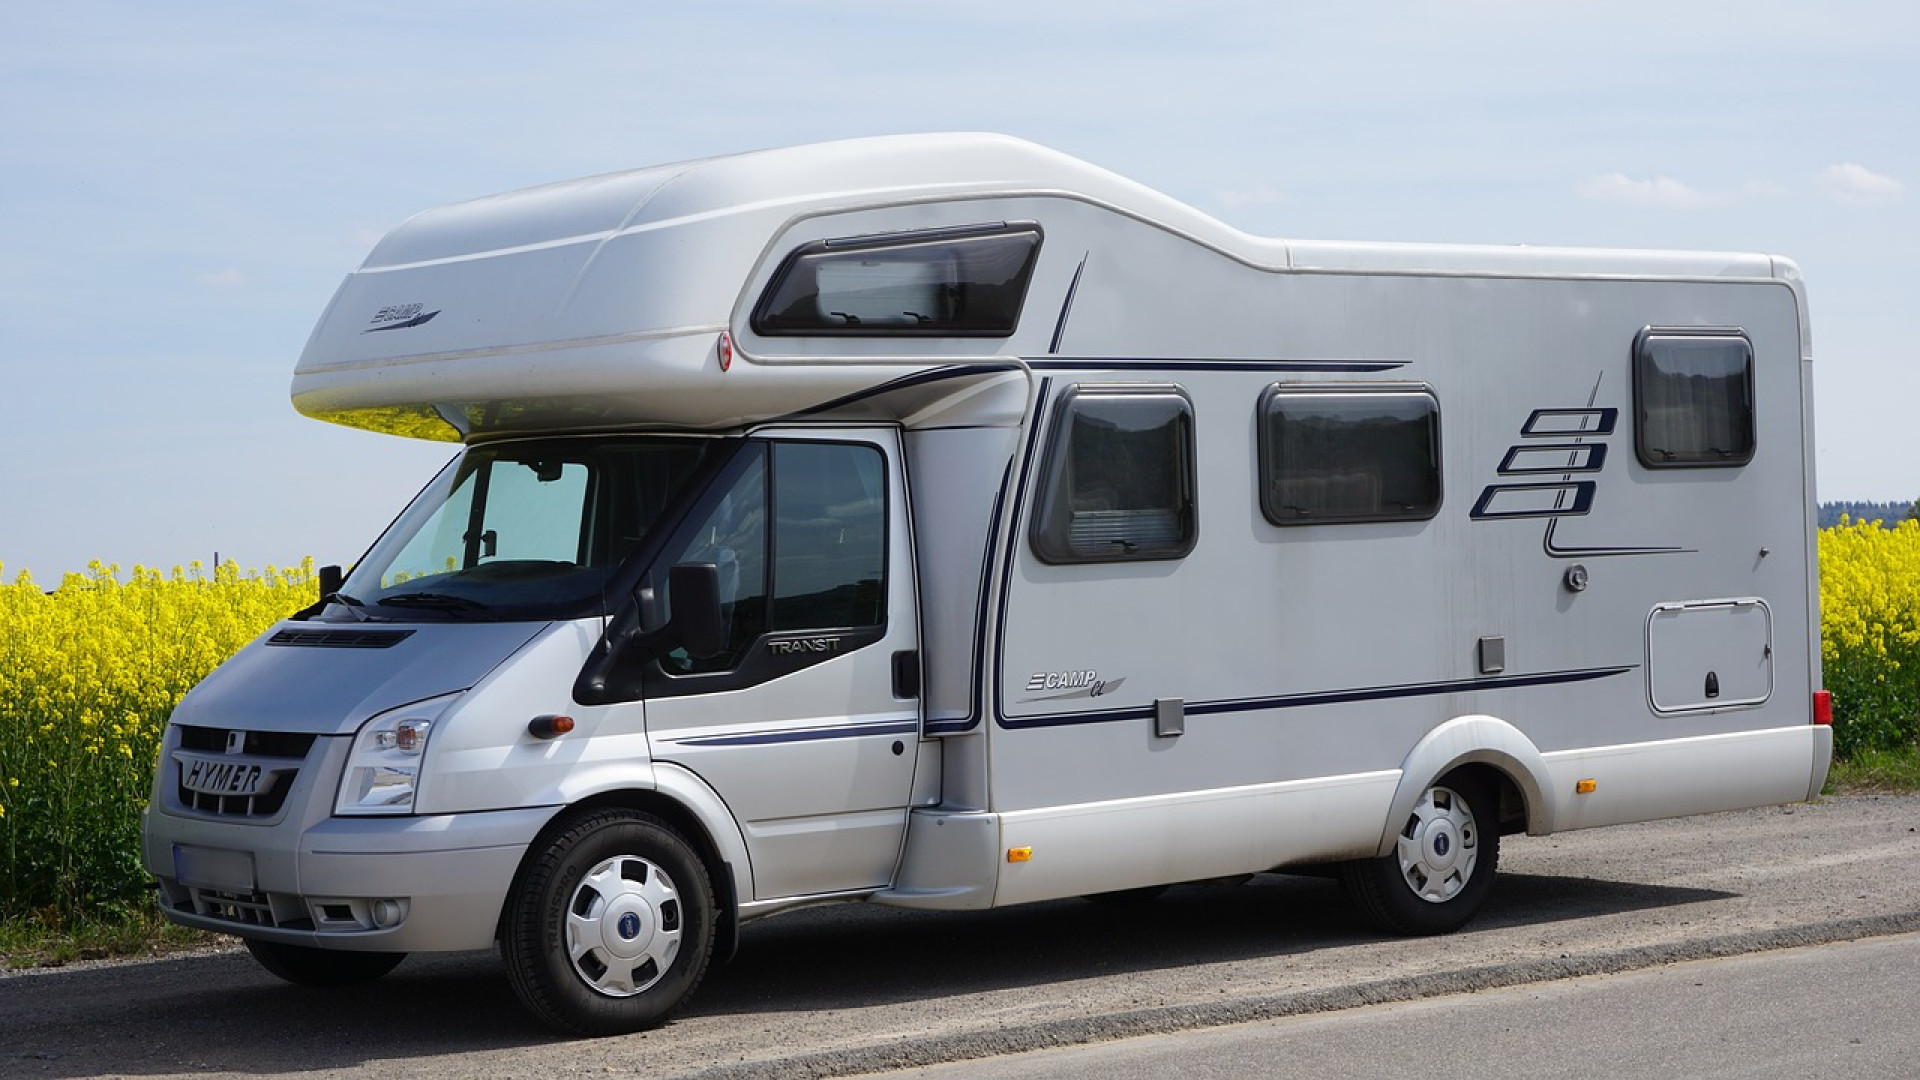 Faut-il acheter son camping-car neuf ou d'occasion